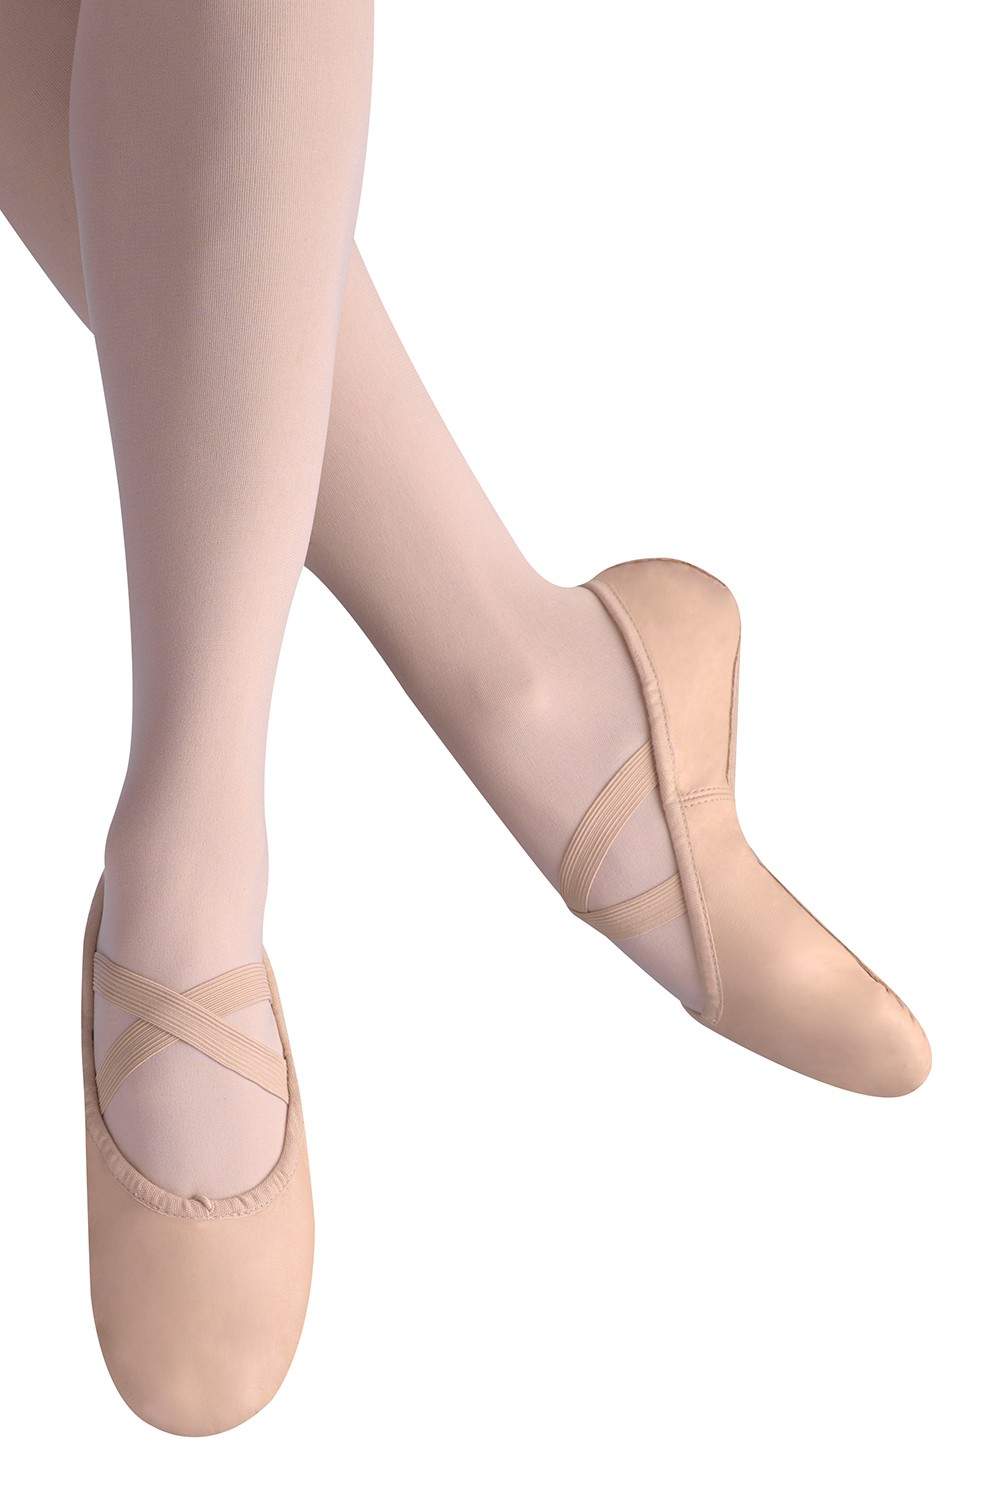 ensemble womenu0027s ballet shoes AXPAOSI